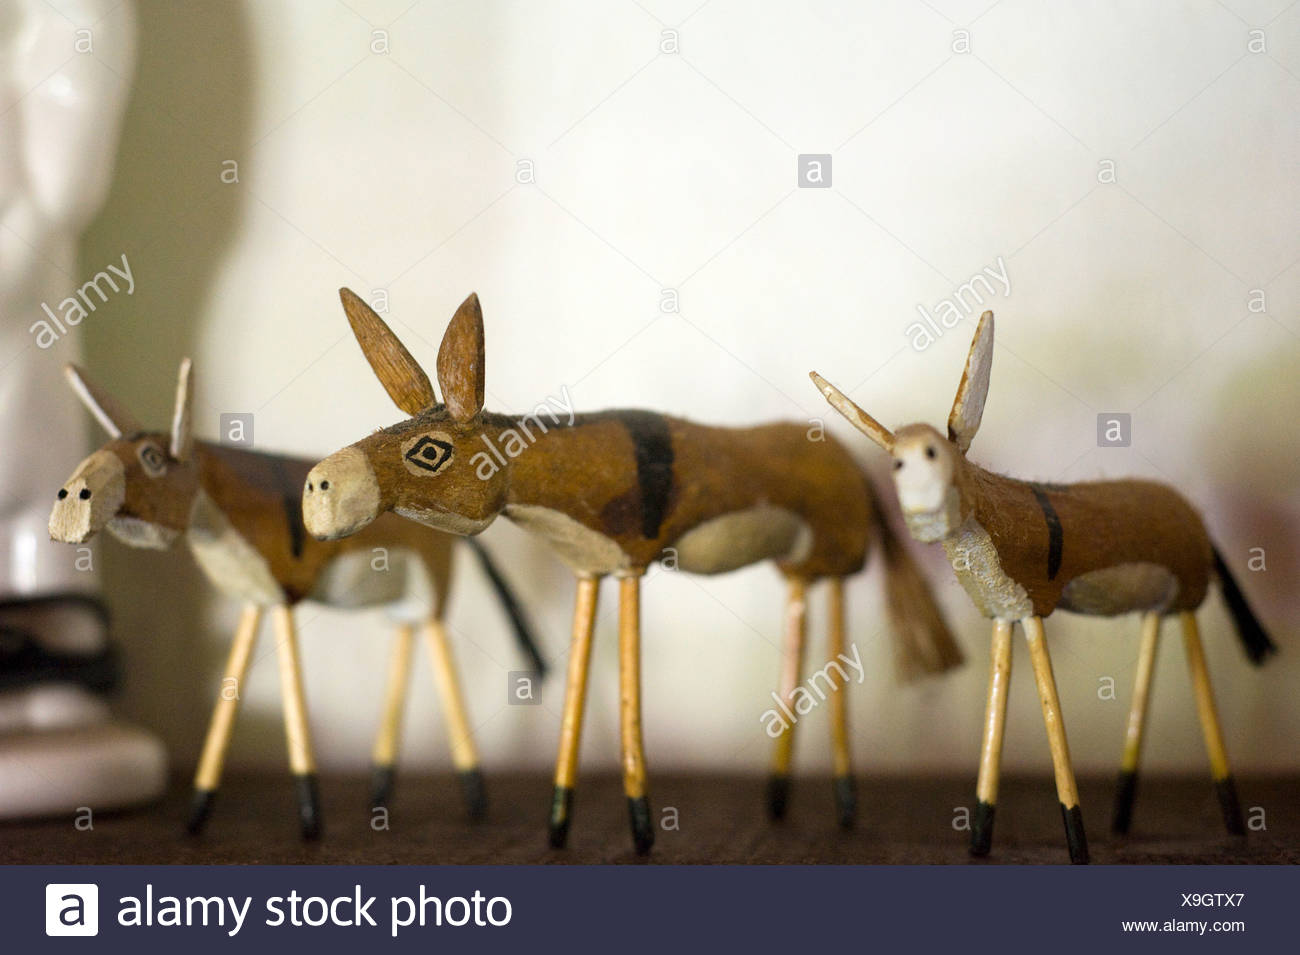 Three ornamental donkeys - Stock Image